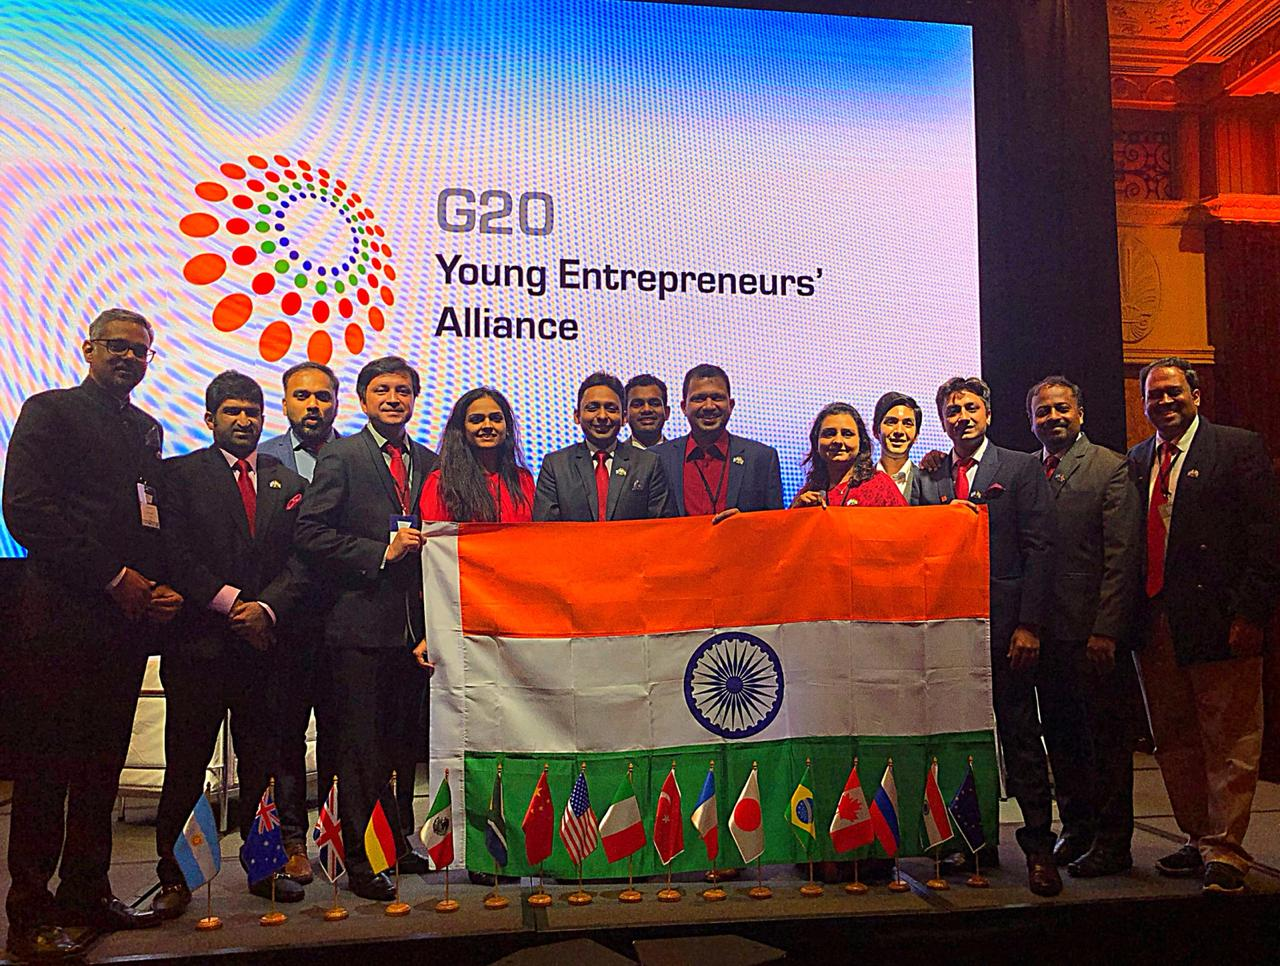 Members of the Yi Delegation to G20 YEA Summit